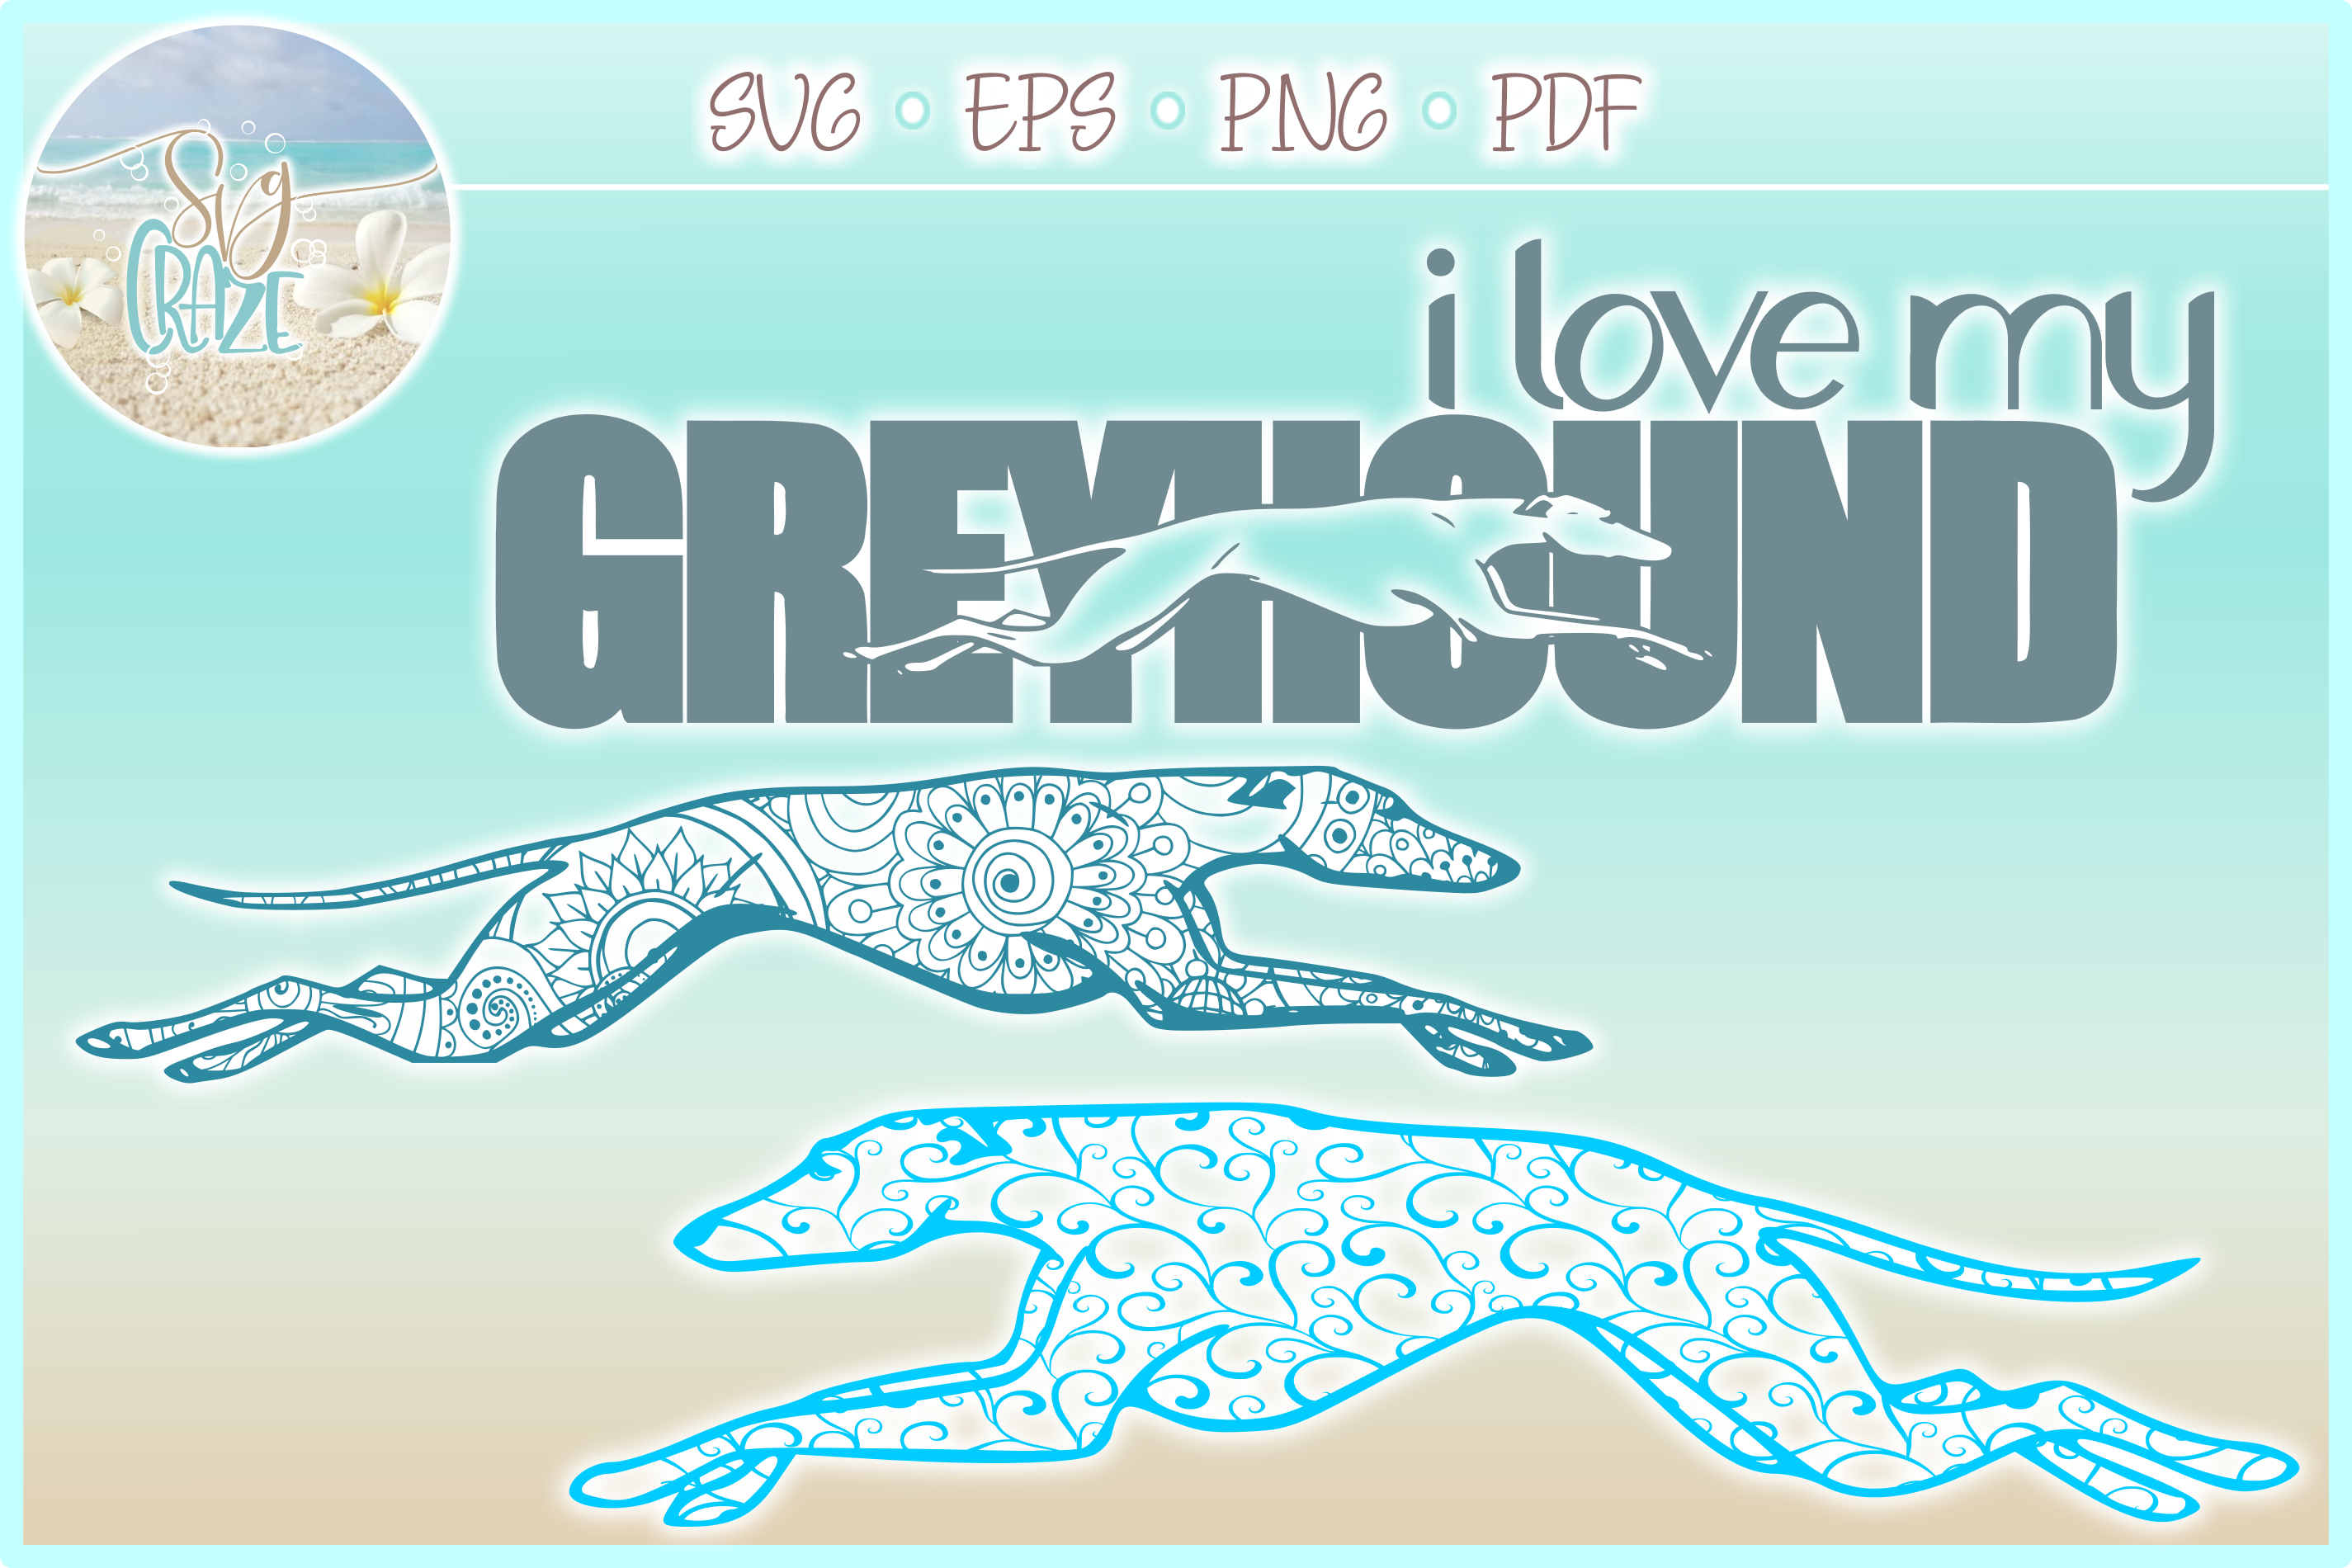 Greyhound Mandala Zentangle Bundle SVG Eps Png PDF example image 4